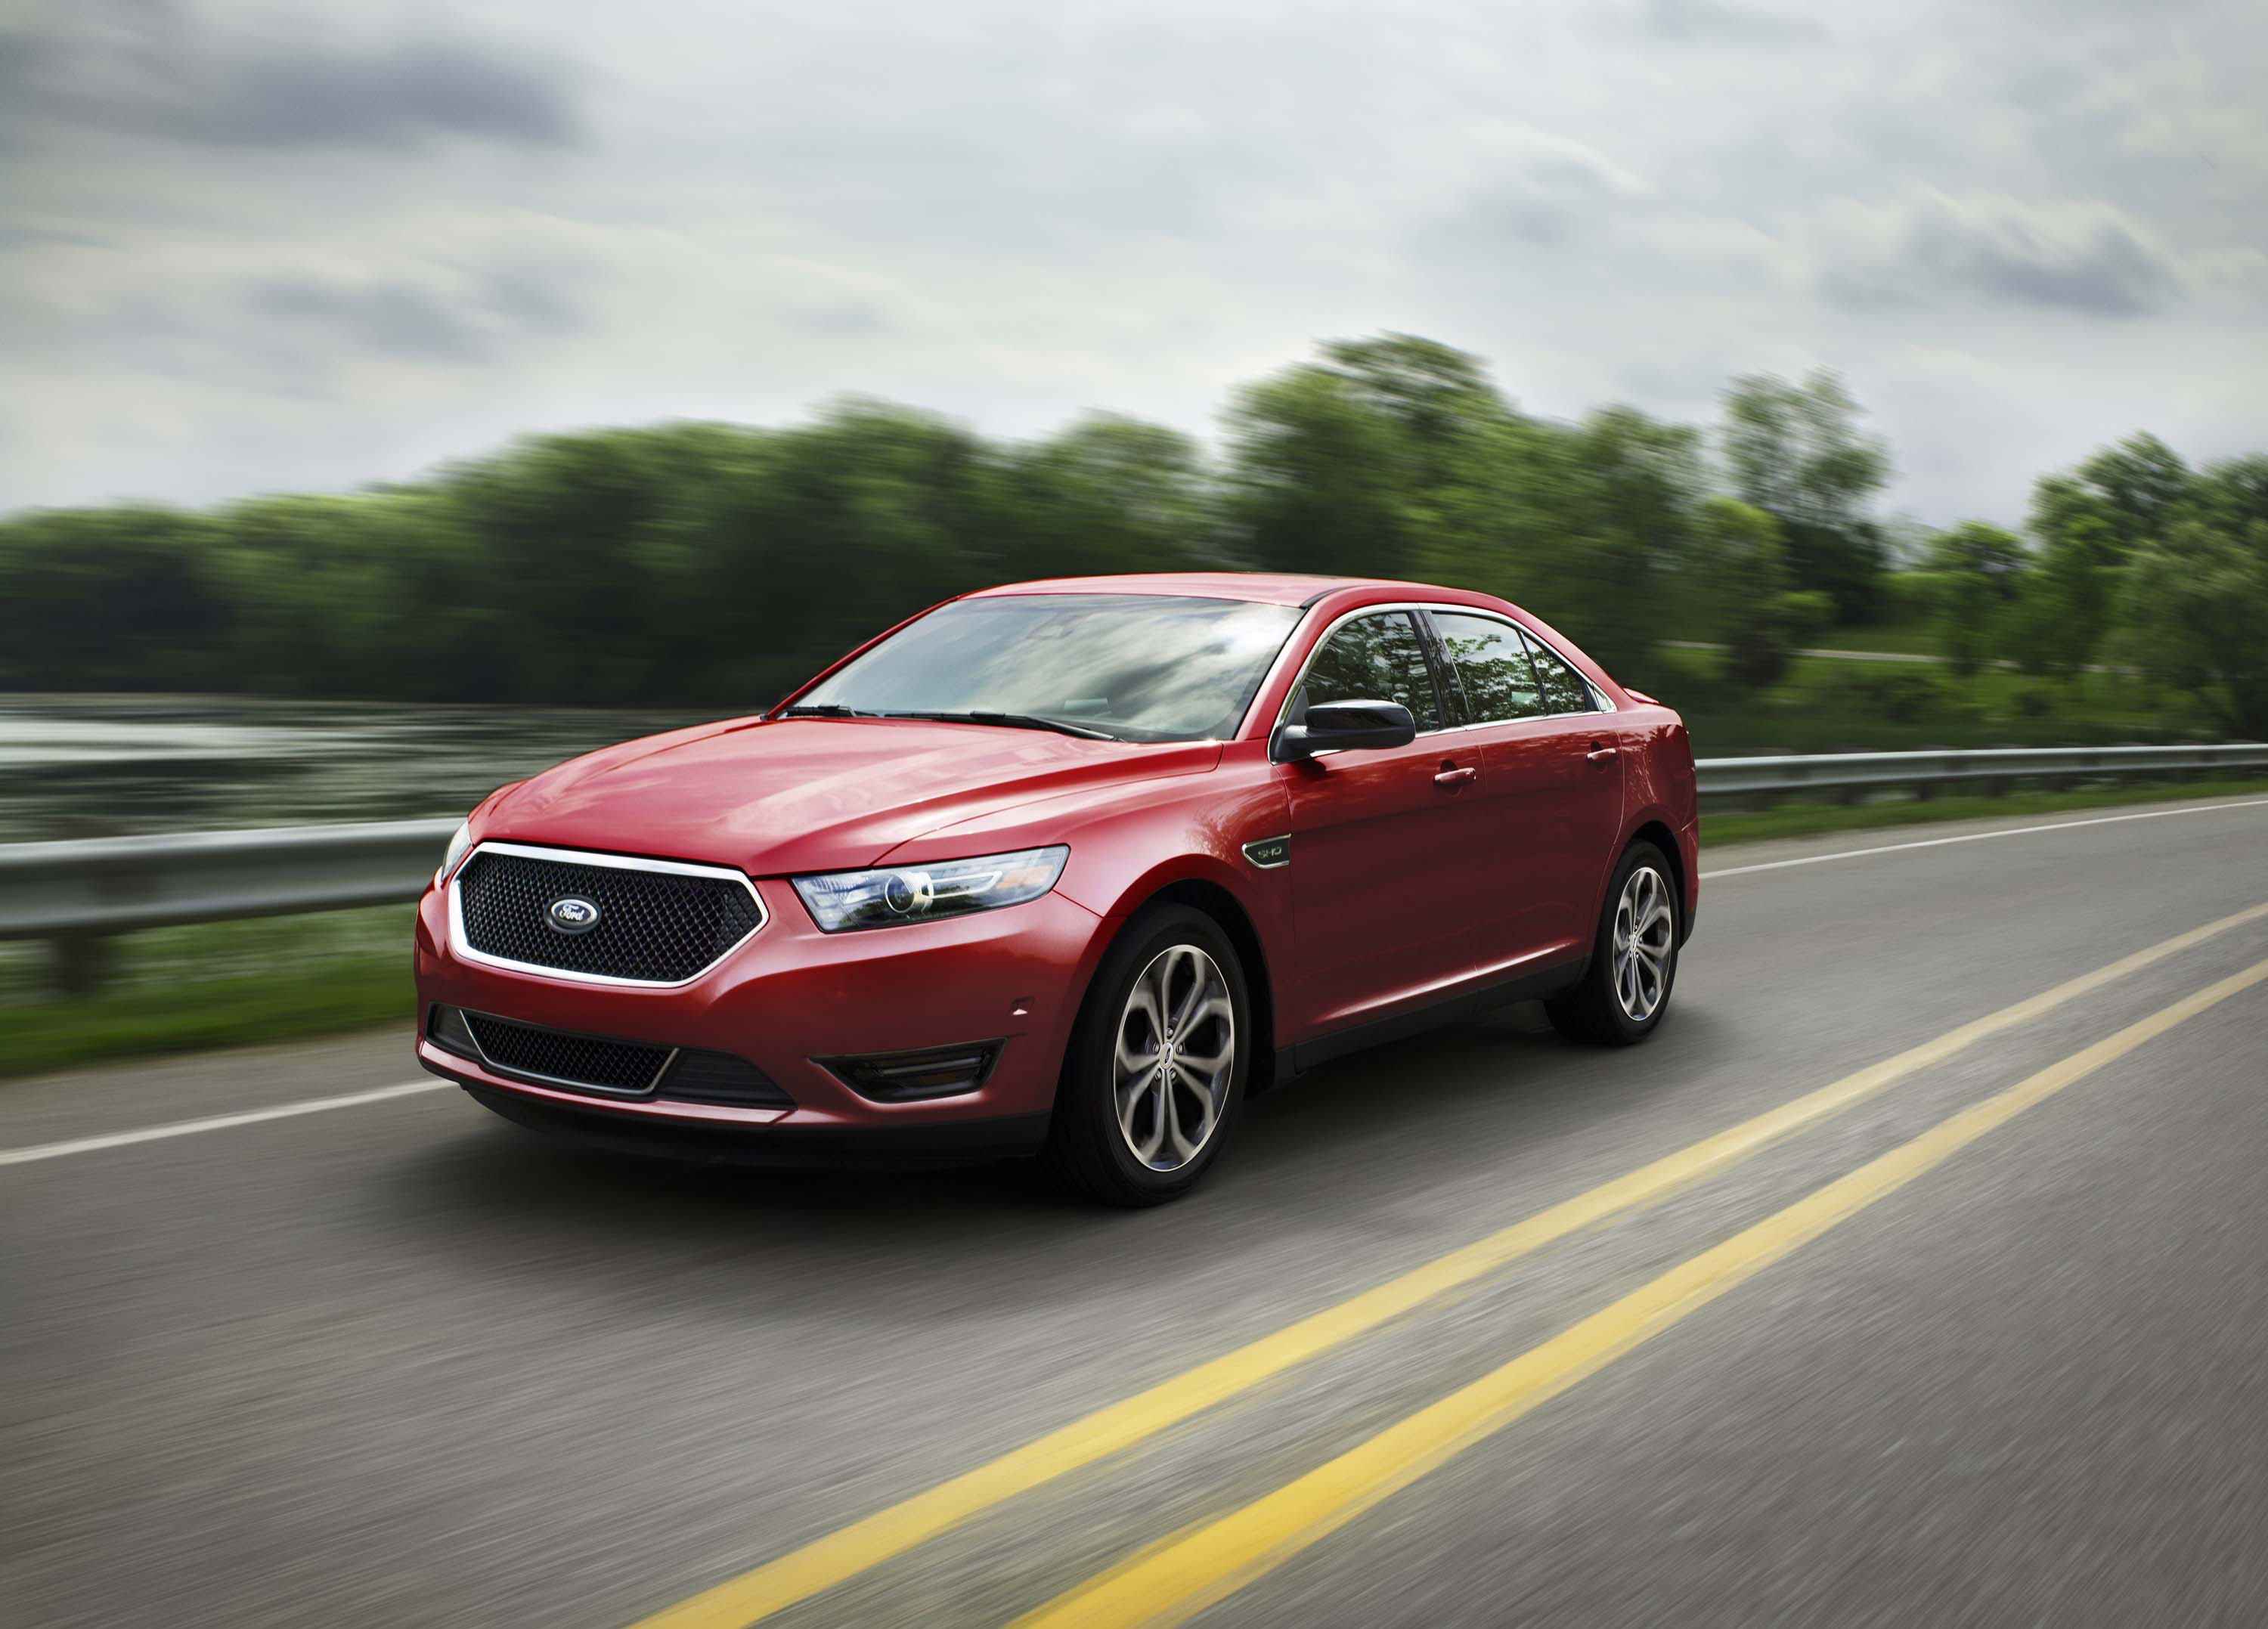 Astonishing 2019 Ford Taurus Review Ratings Specs Prices And Photos Machost Co Dining Chair Design Ideas Machostcouk